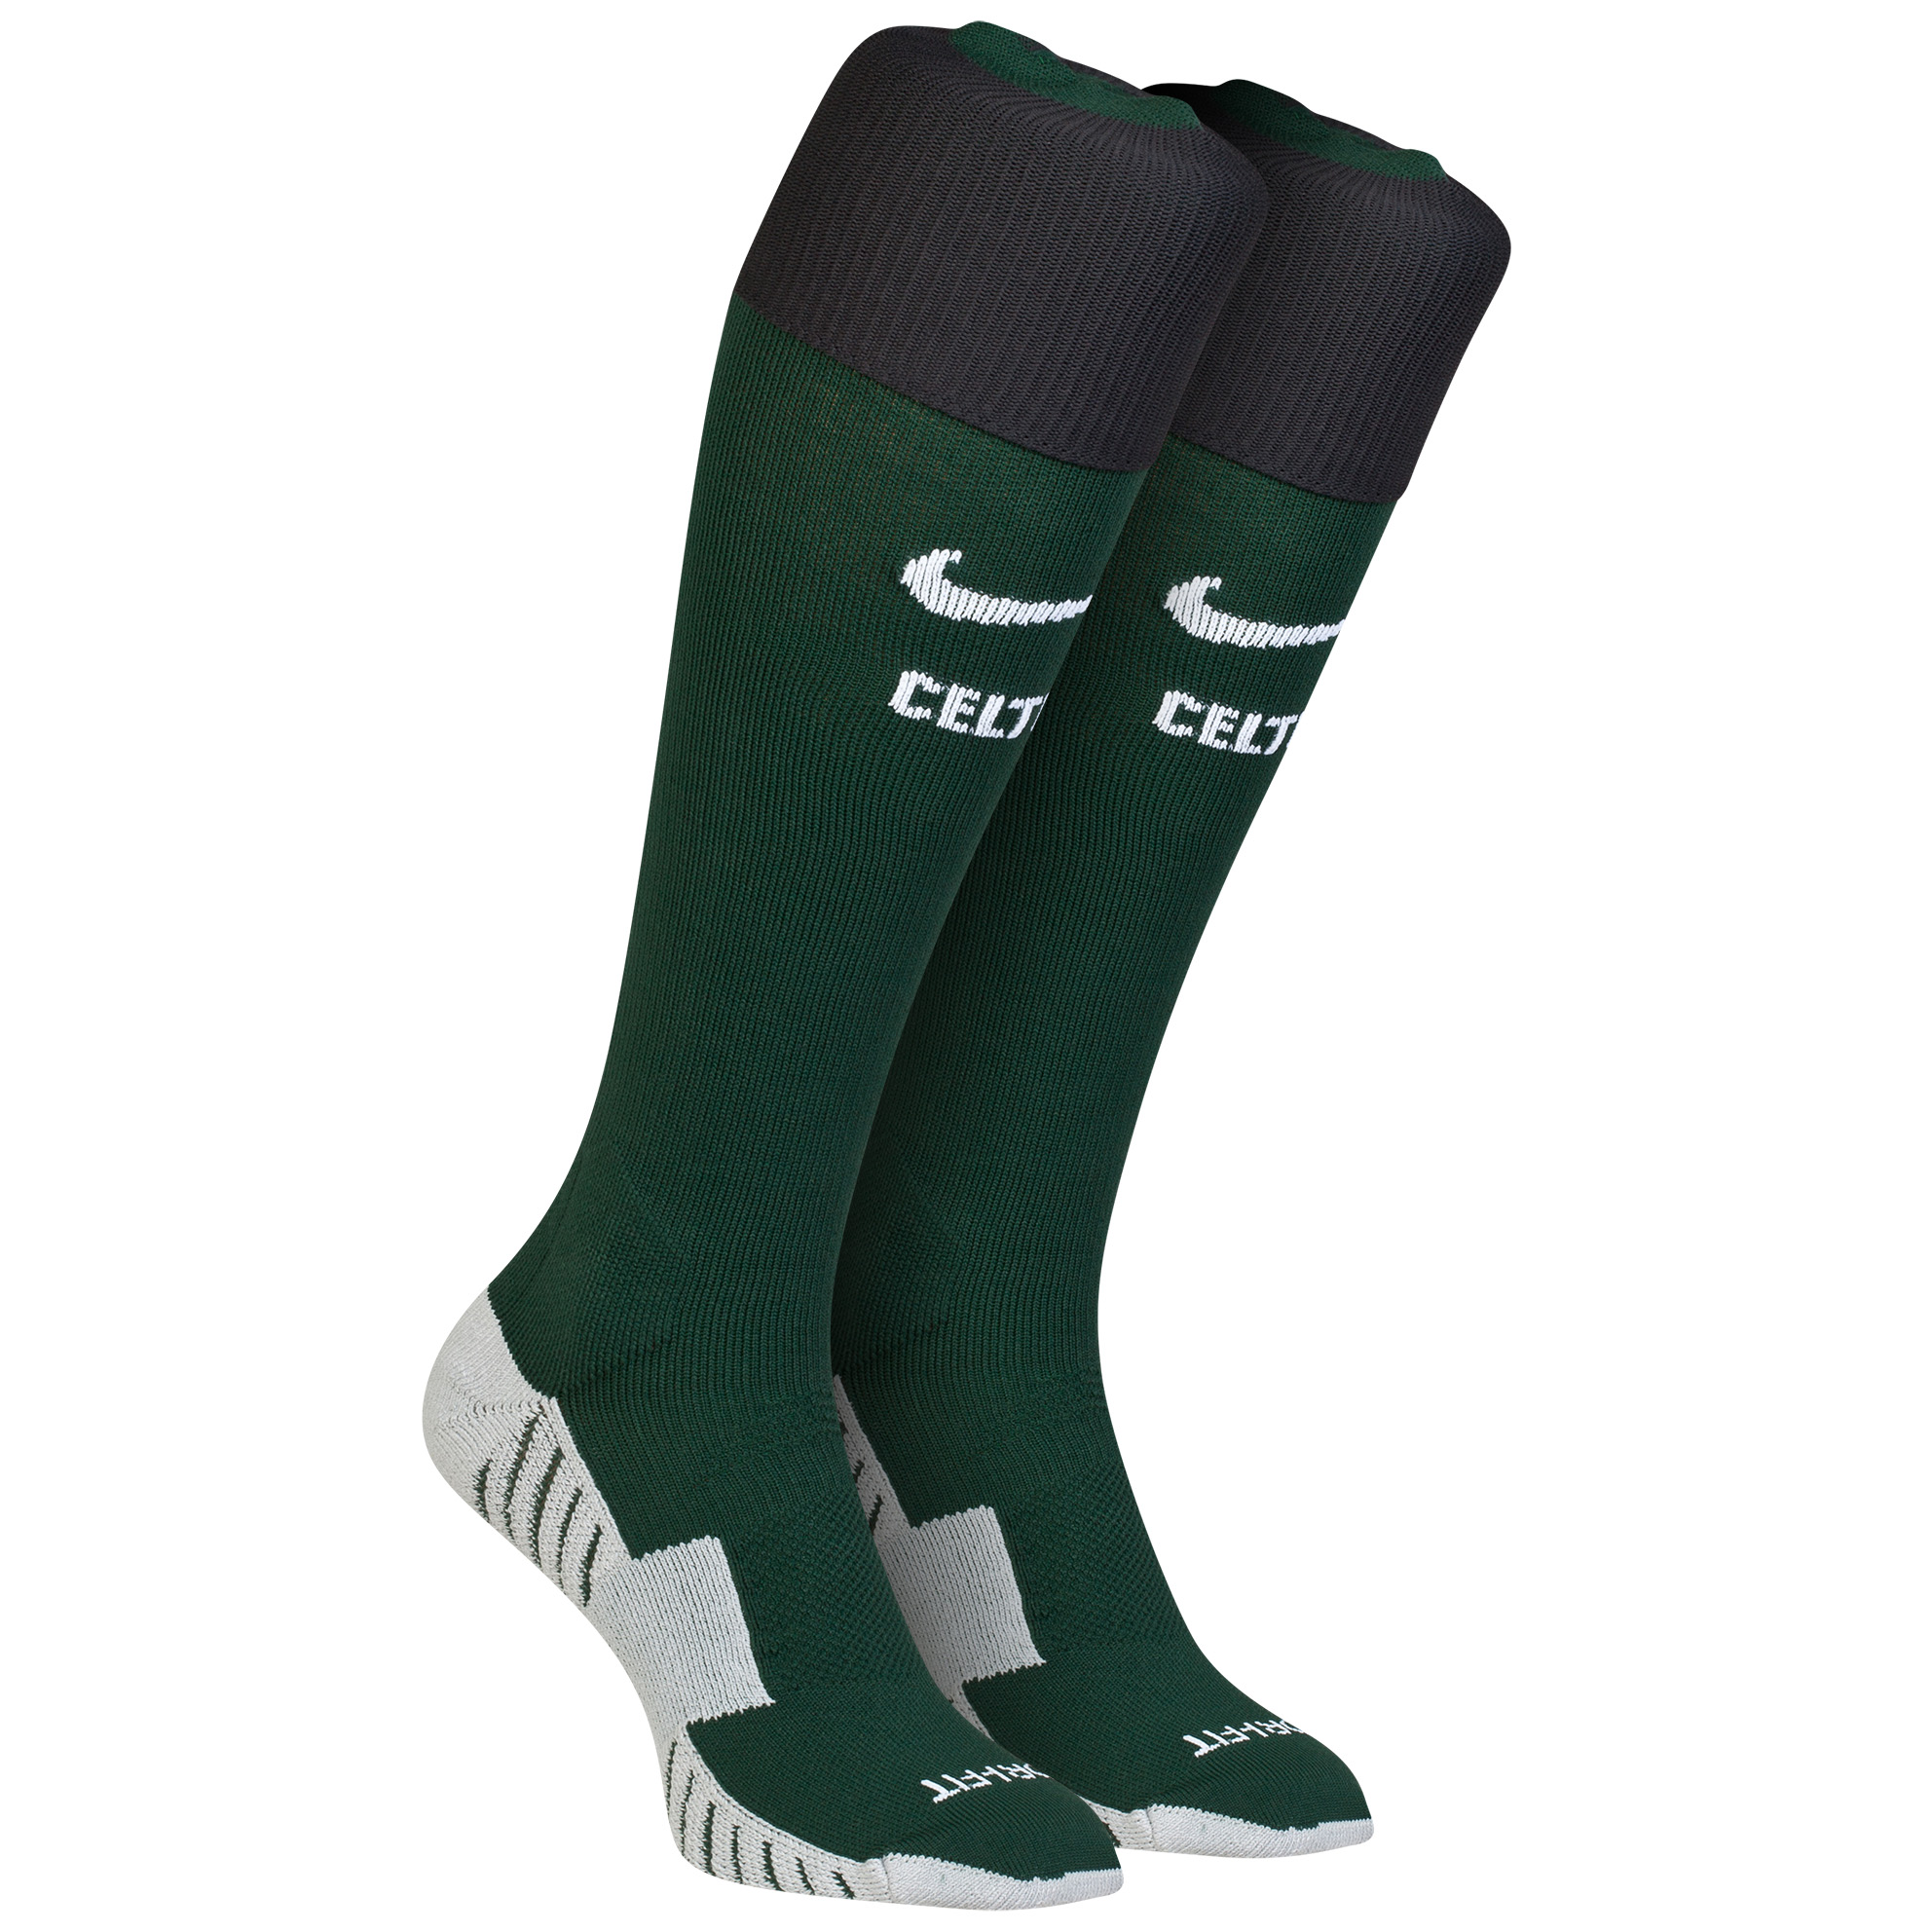 Celtic Away Socks 201415 Green